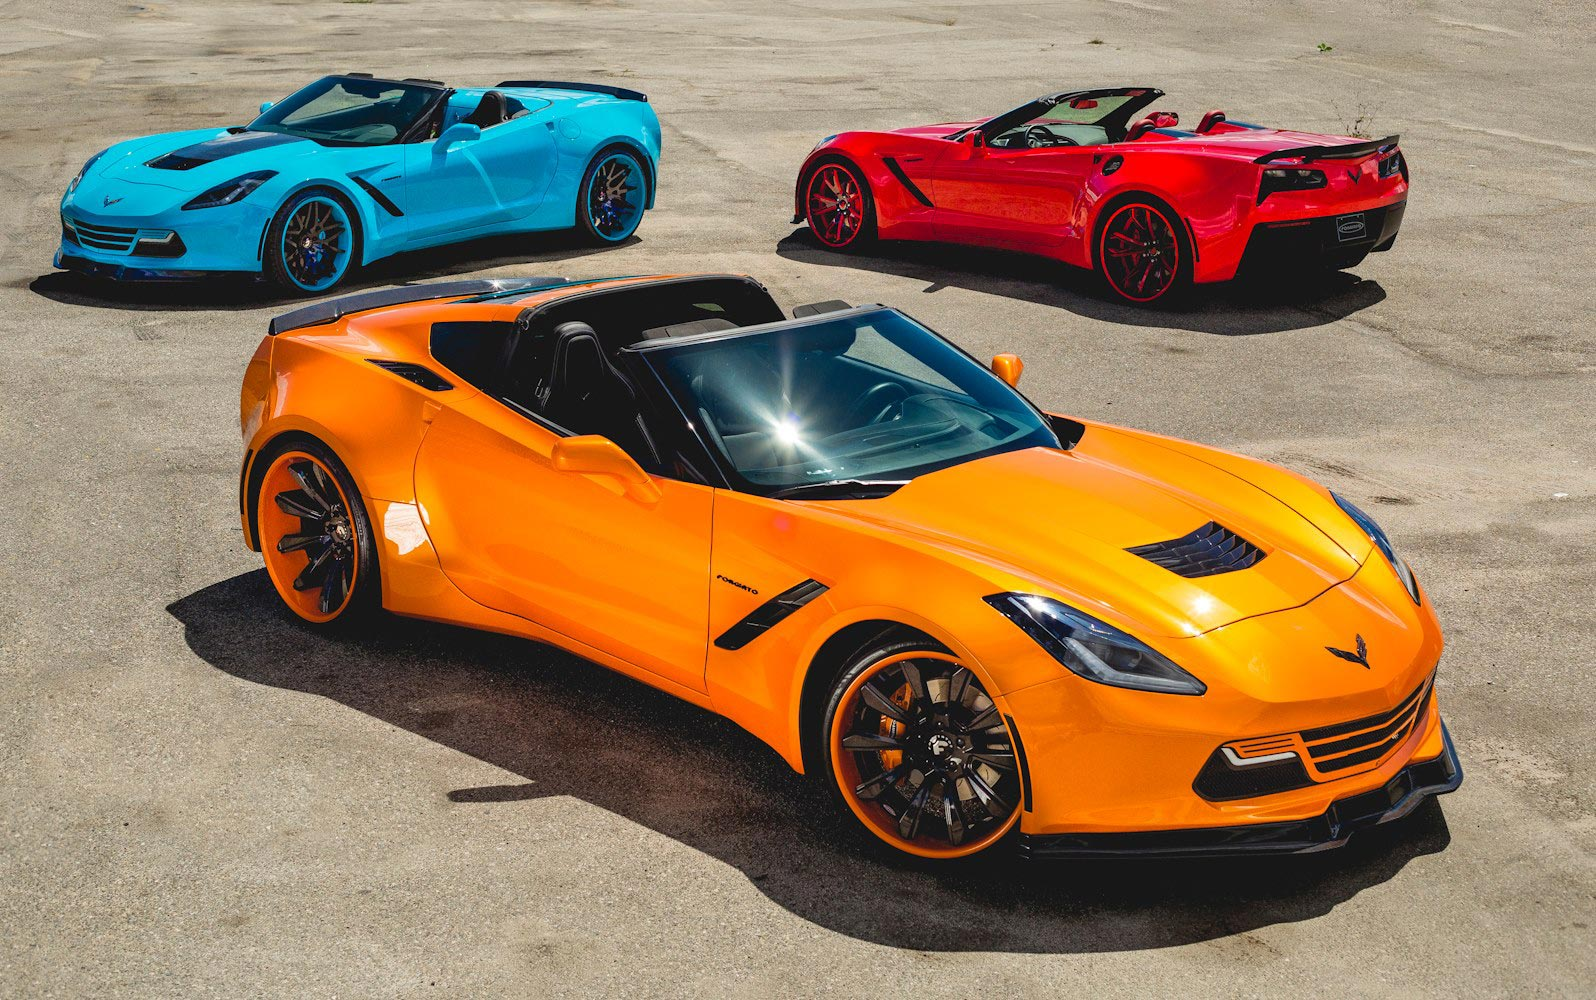 forgiato widebody c7 corvette stingrays now available in multiple flavors corvette sales. Black Bedroom Furniture Sets. Home Design Ideas